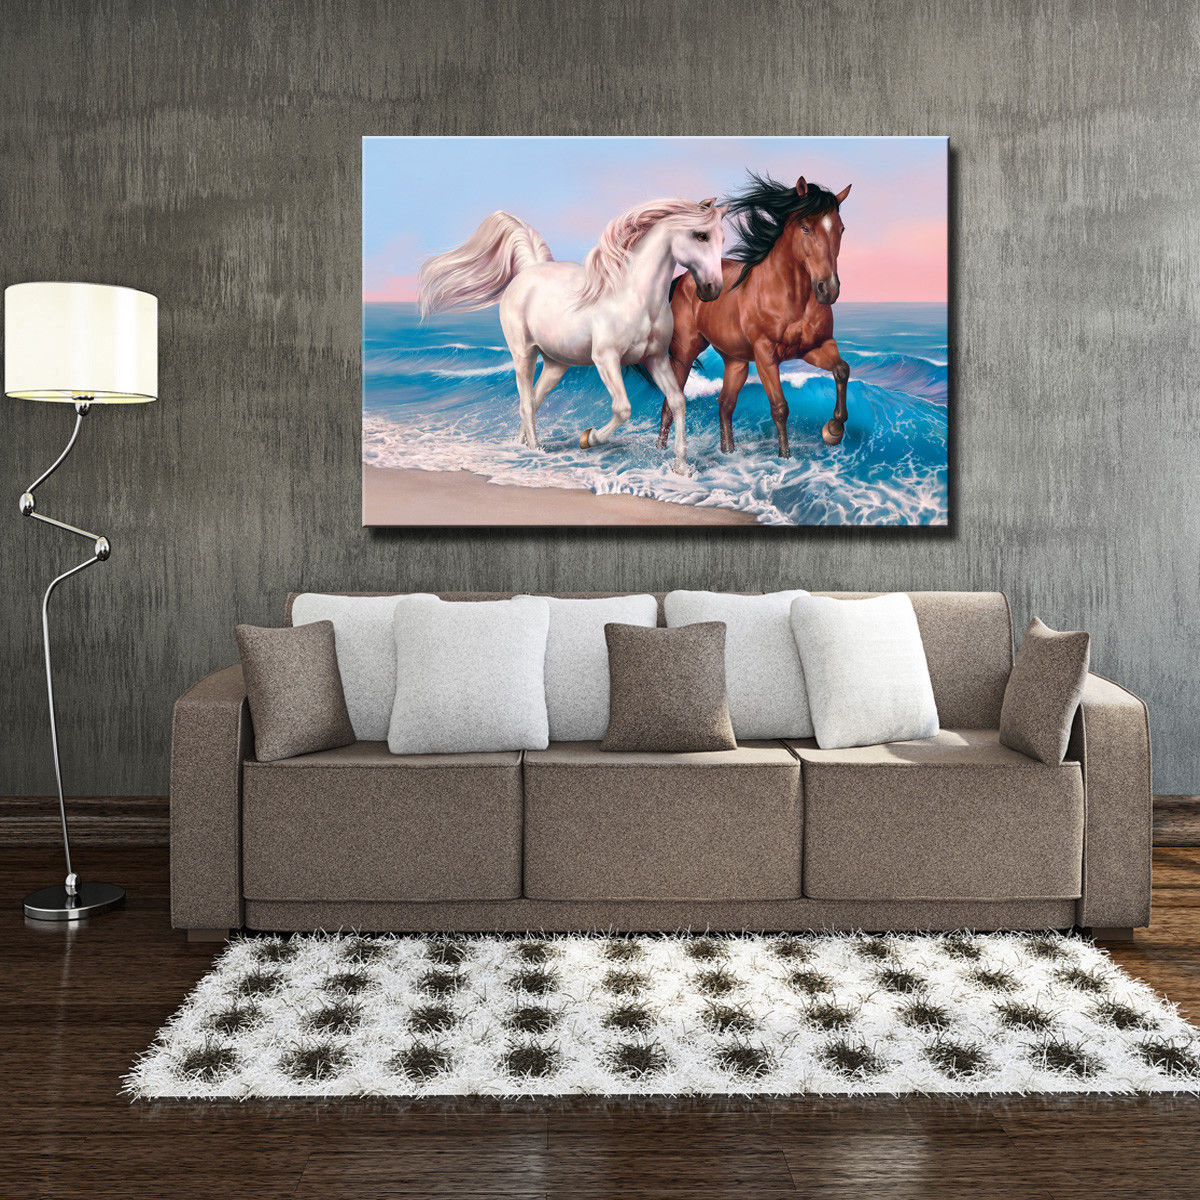 "Art Star Wars Original Oil Painting Print On Canvas Two Horse 24""x36""x1pcs"